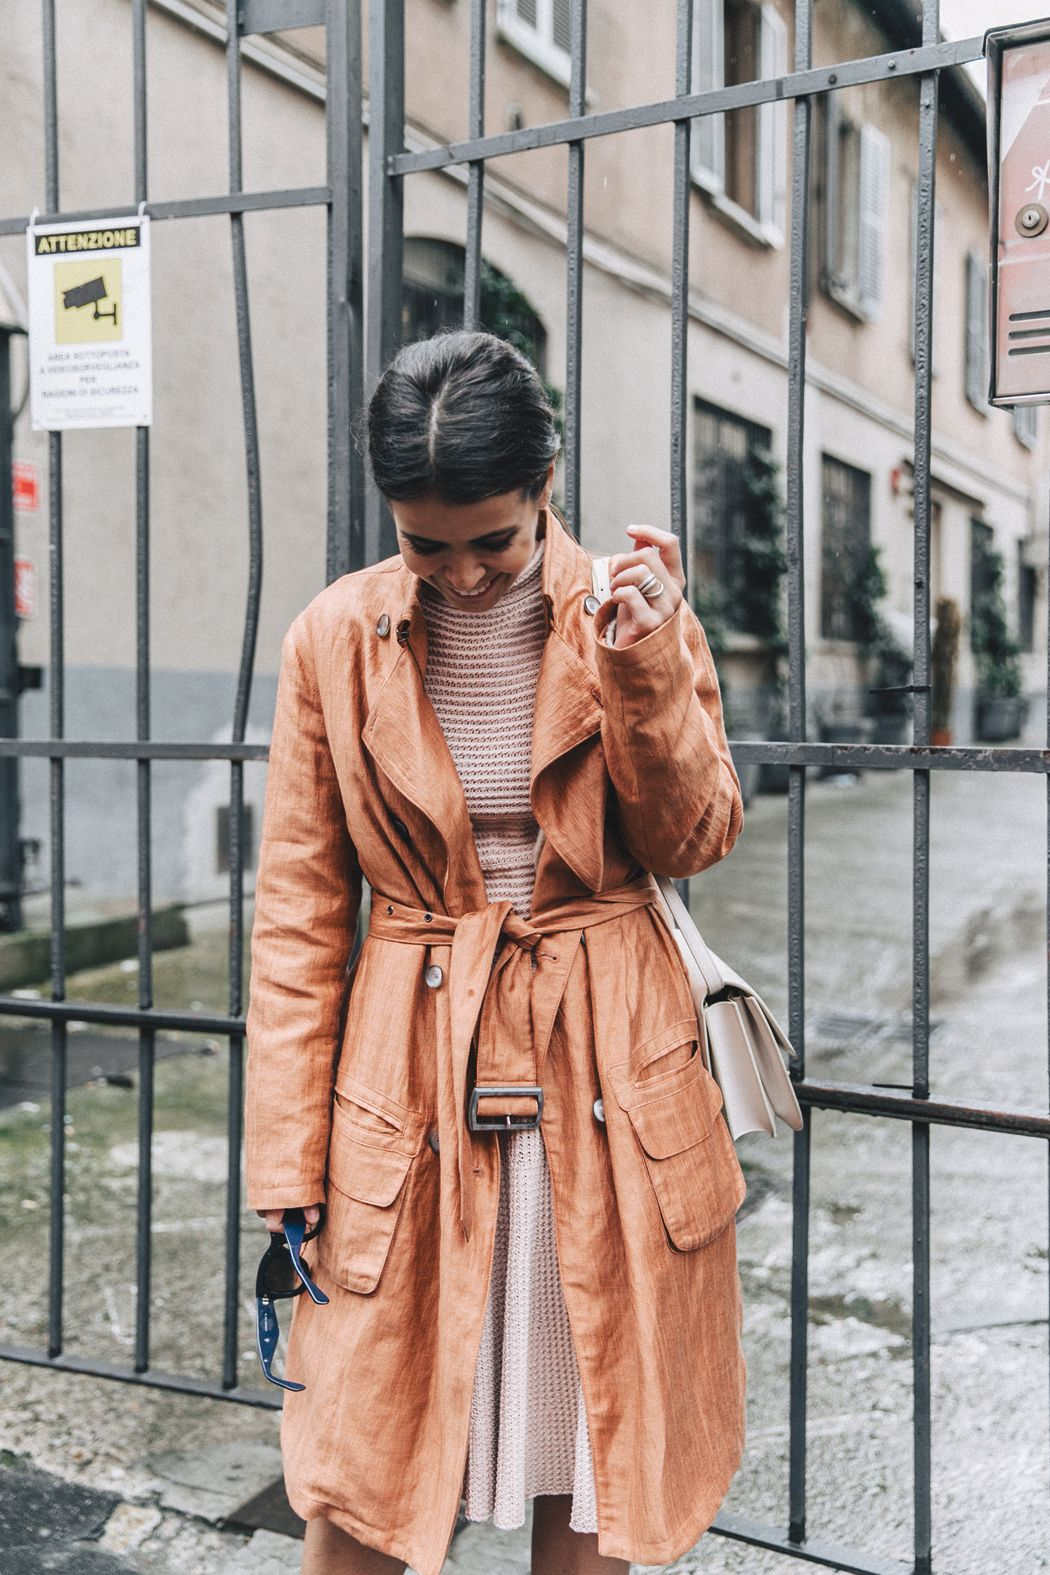 Armani-Trench_Coat-Pink_Dress-Chanel_Slingbacks-Celine_Box_Bag-Outfit-Milan_Fashion_Week-Street_Style-9